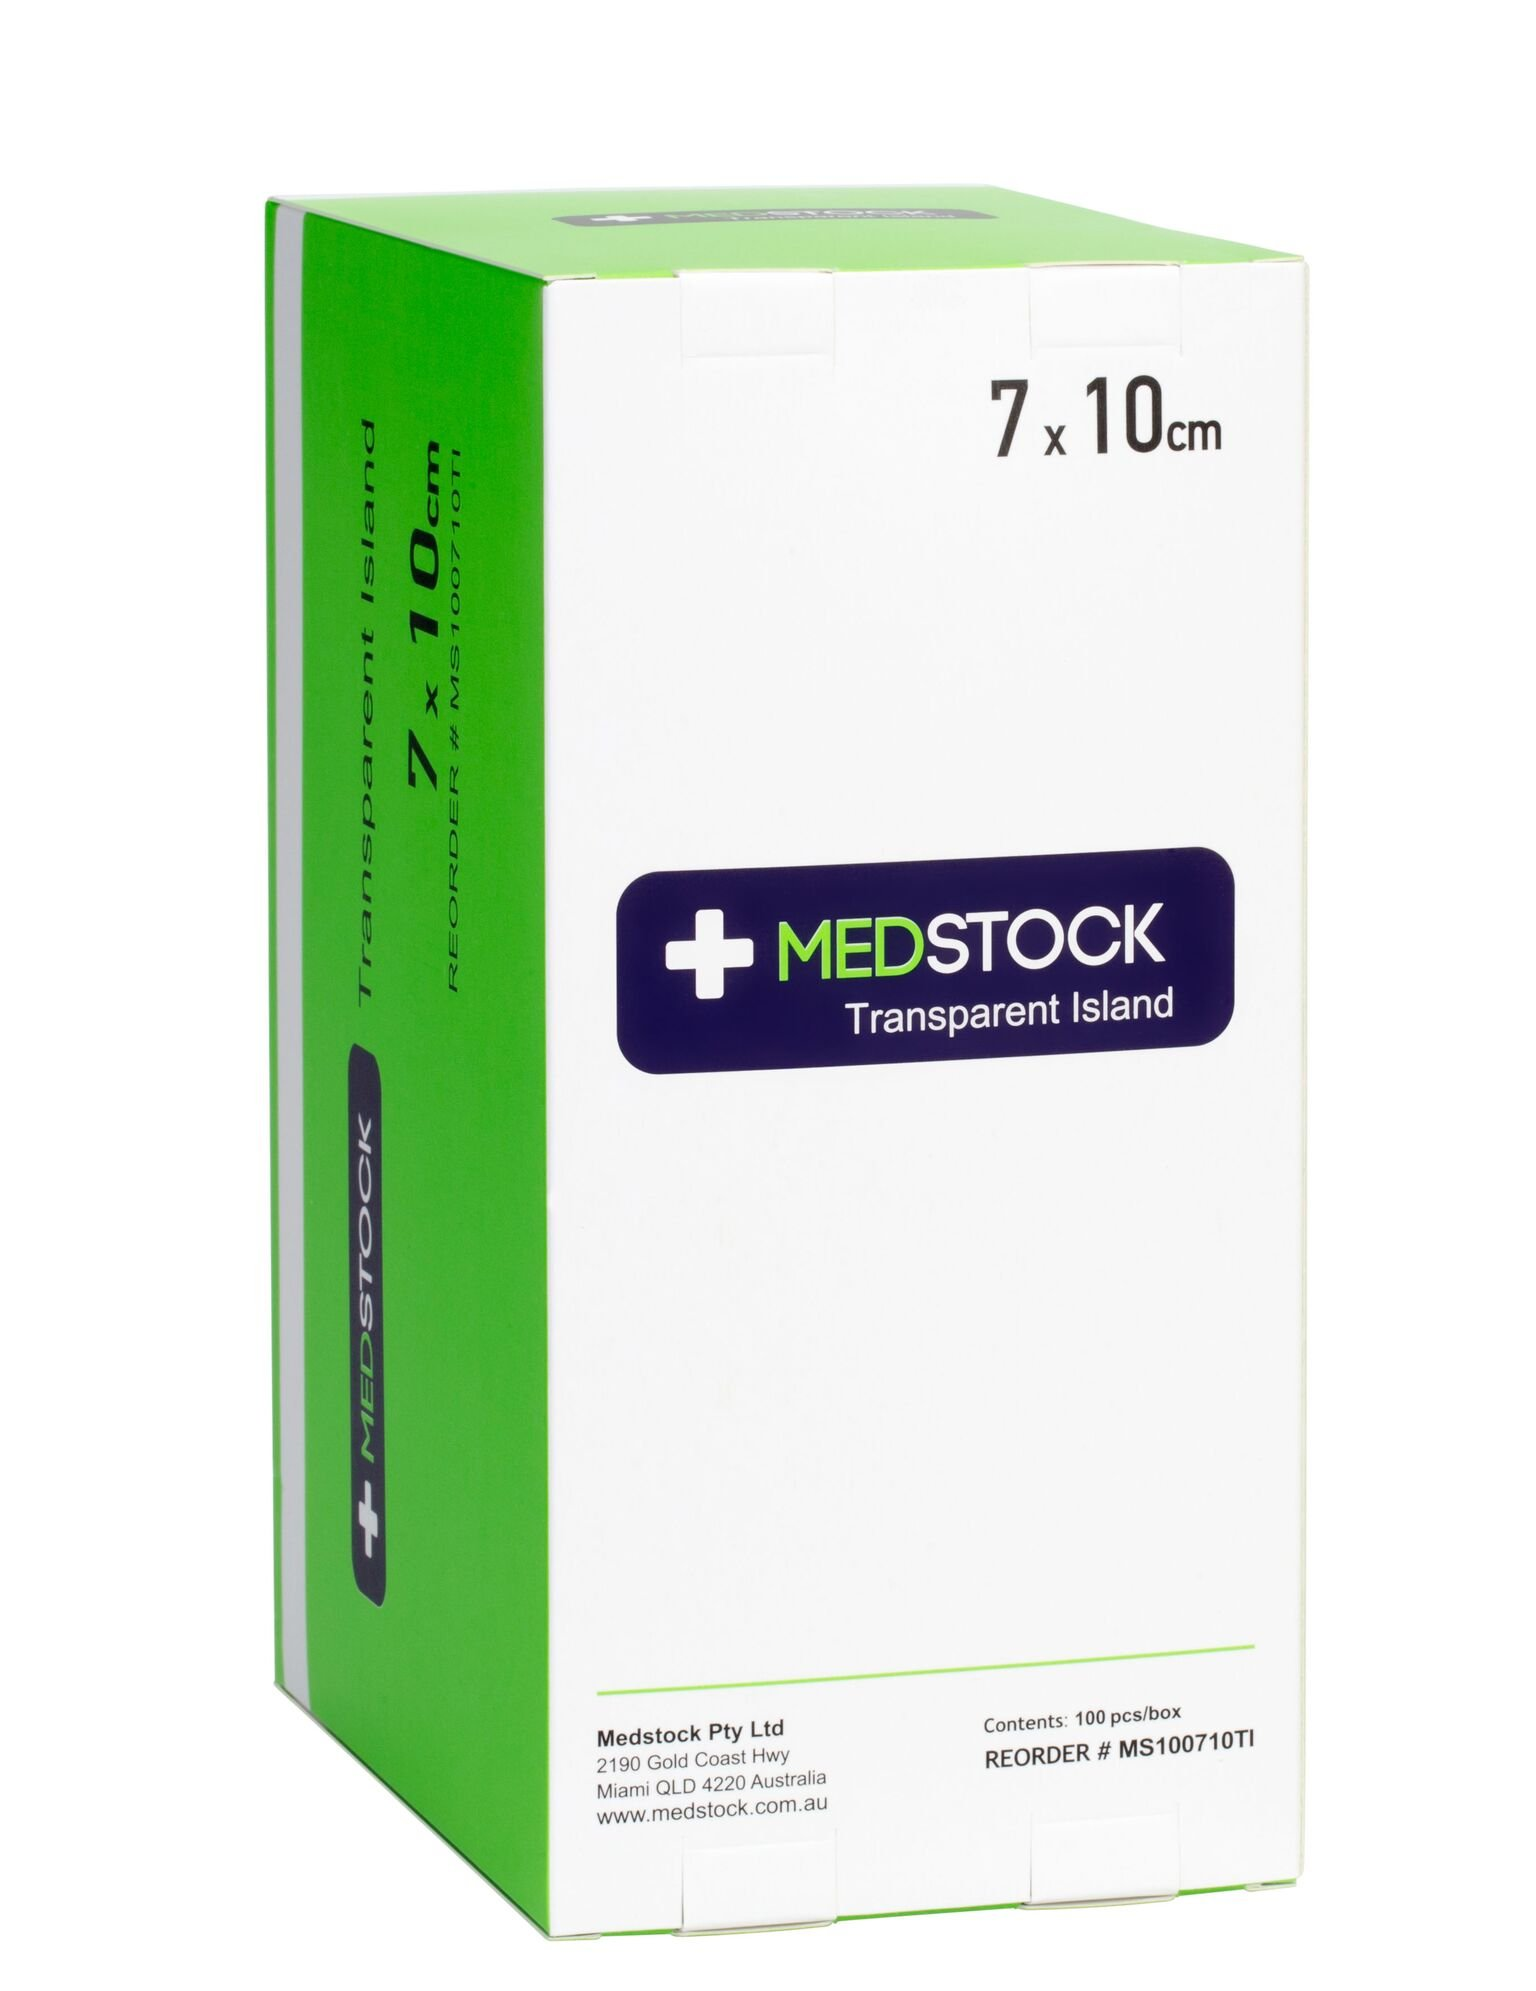 MEDSTOCK TRANSPARENT ISLAND DRESSING 7CM x 10CM BOX 100